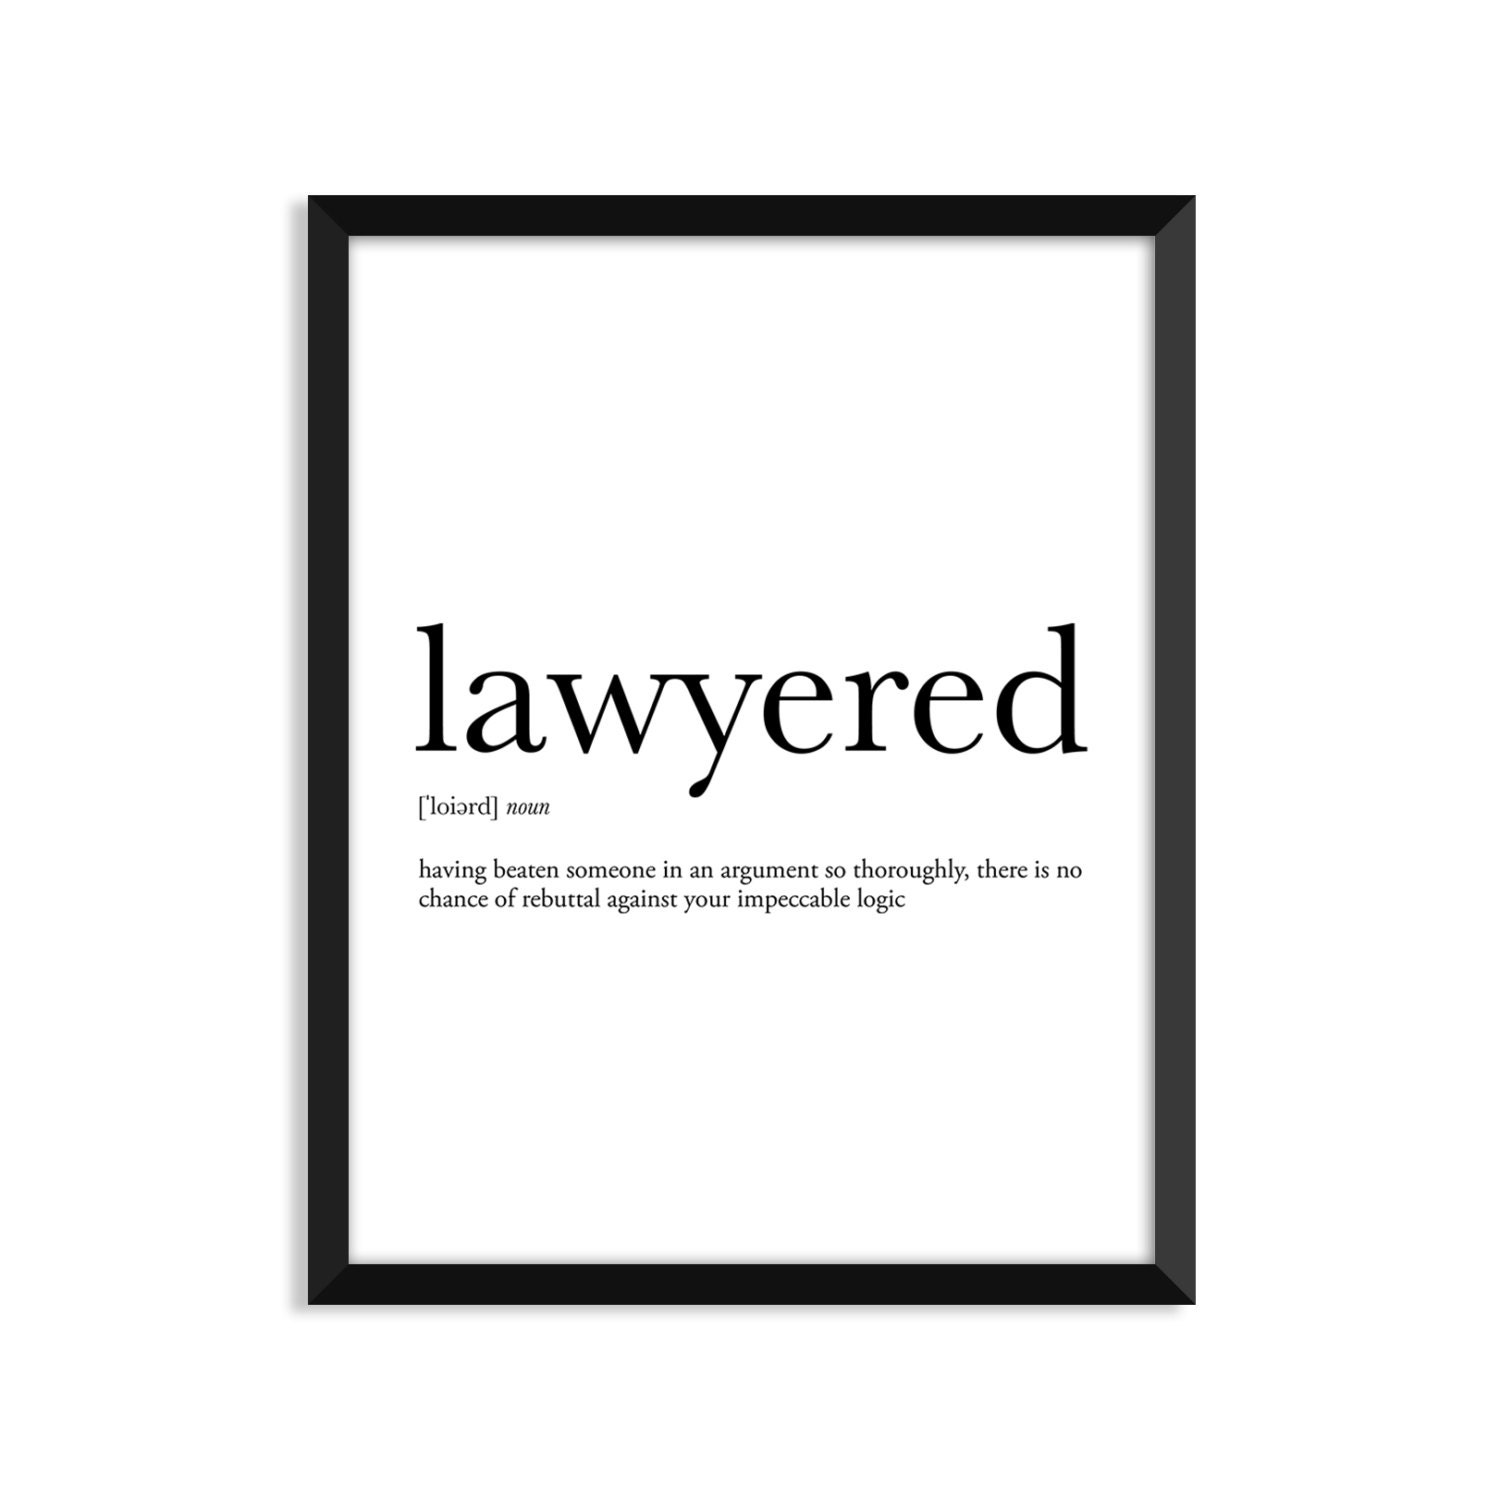 lawyered definition art poster dictionary art print office | etsy